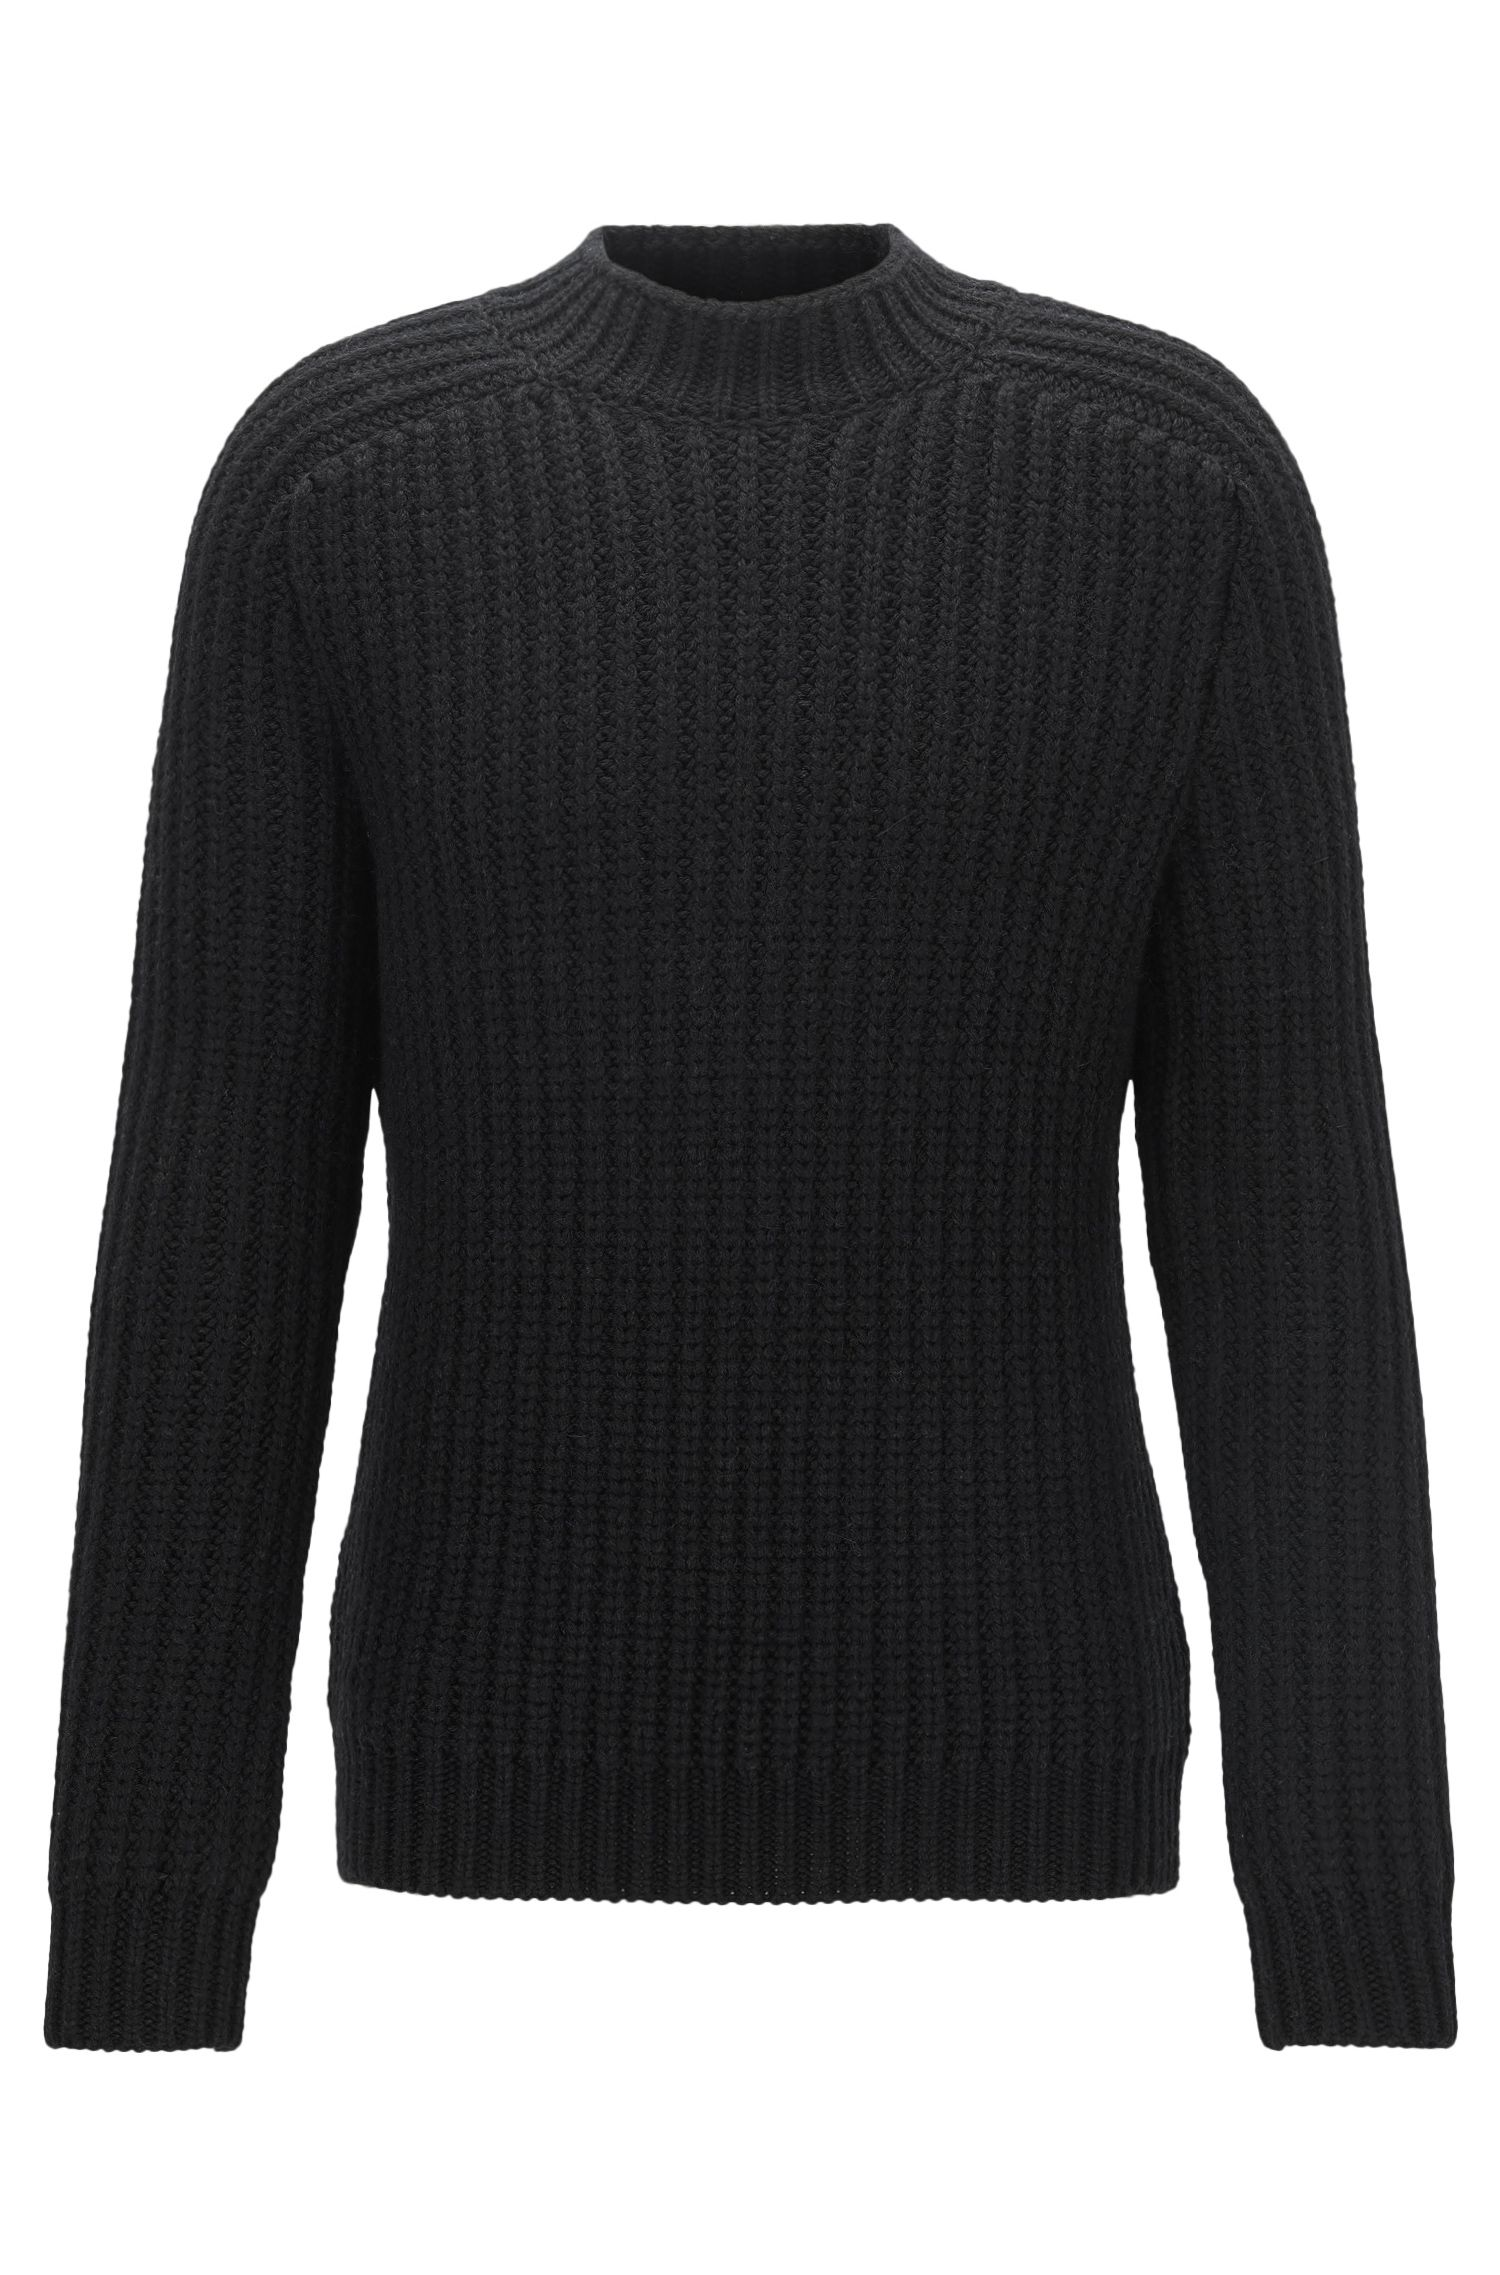 Wide-neck heavy-knit ribbed jumper in a wool blend